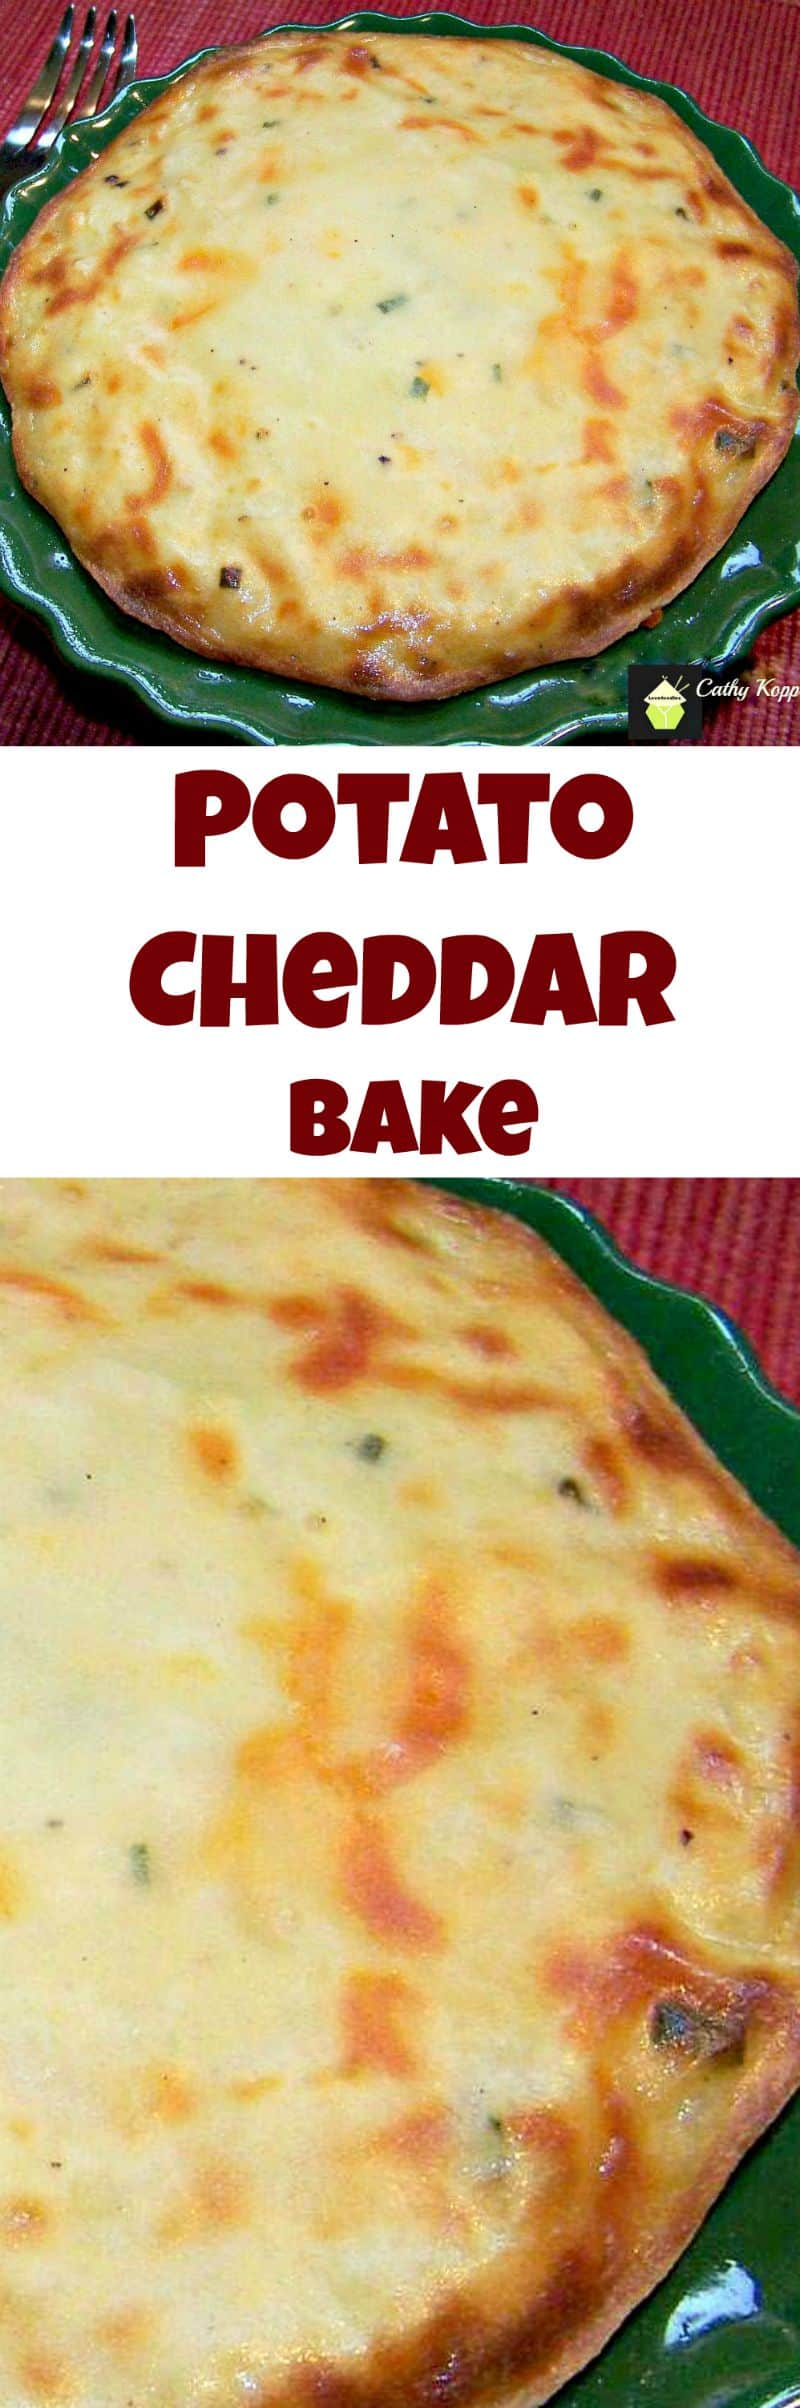 how to make potatoes bake